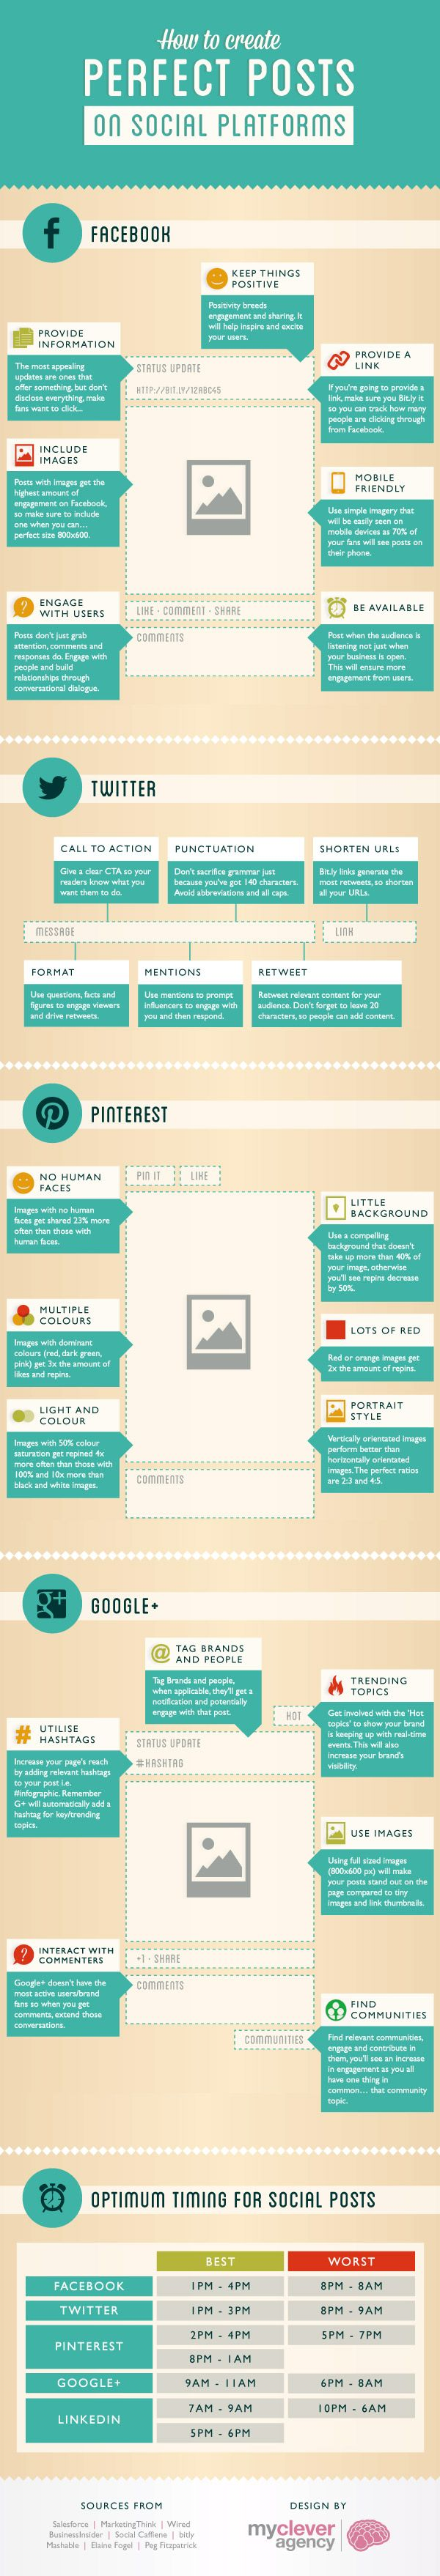 Creare un post perfetto per ogni social network - How to create perfect post to social platform